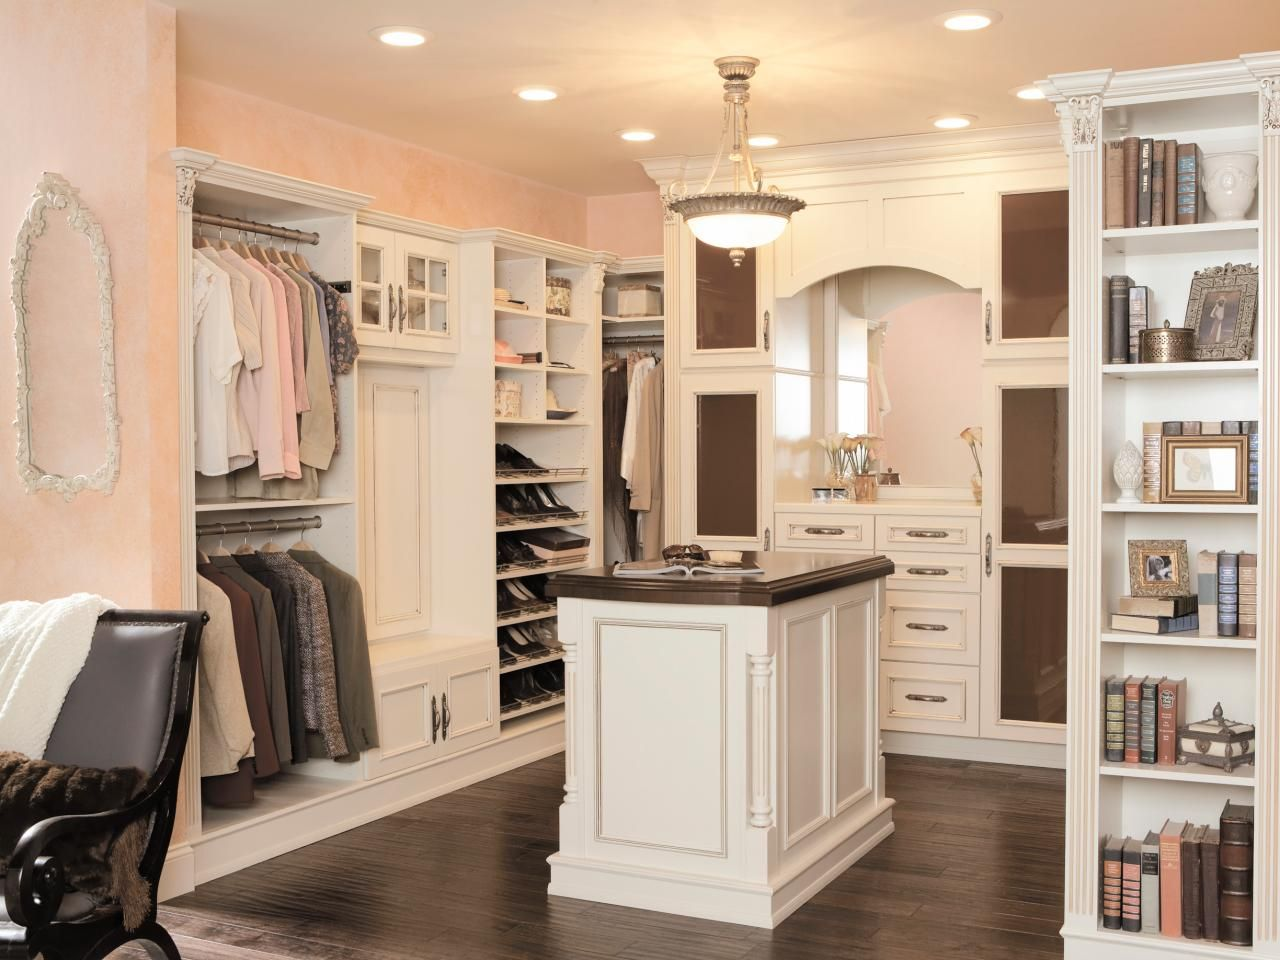 The Hottest Pinterest Photos Pinterest Photos Hgtv And - High end closet design